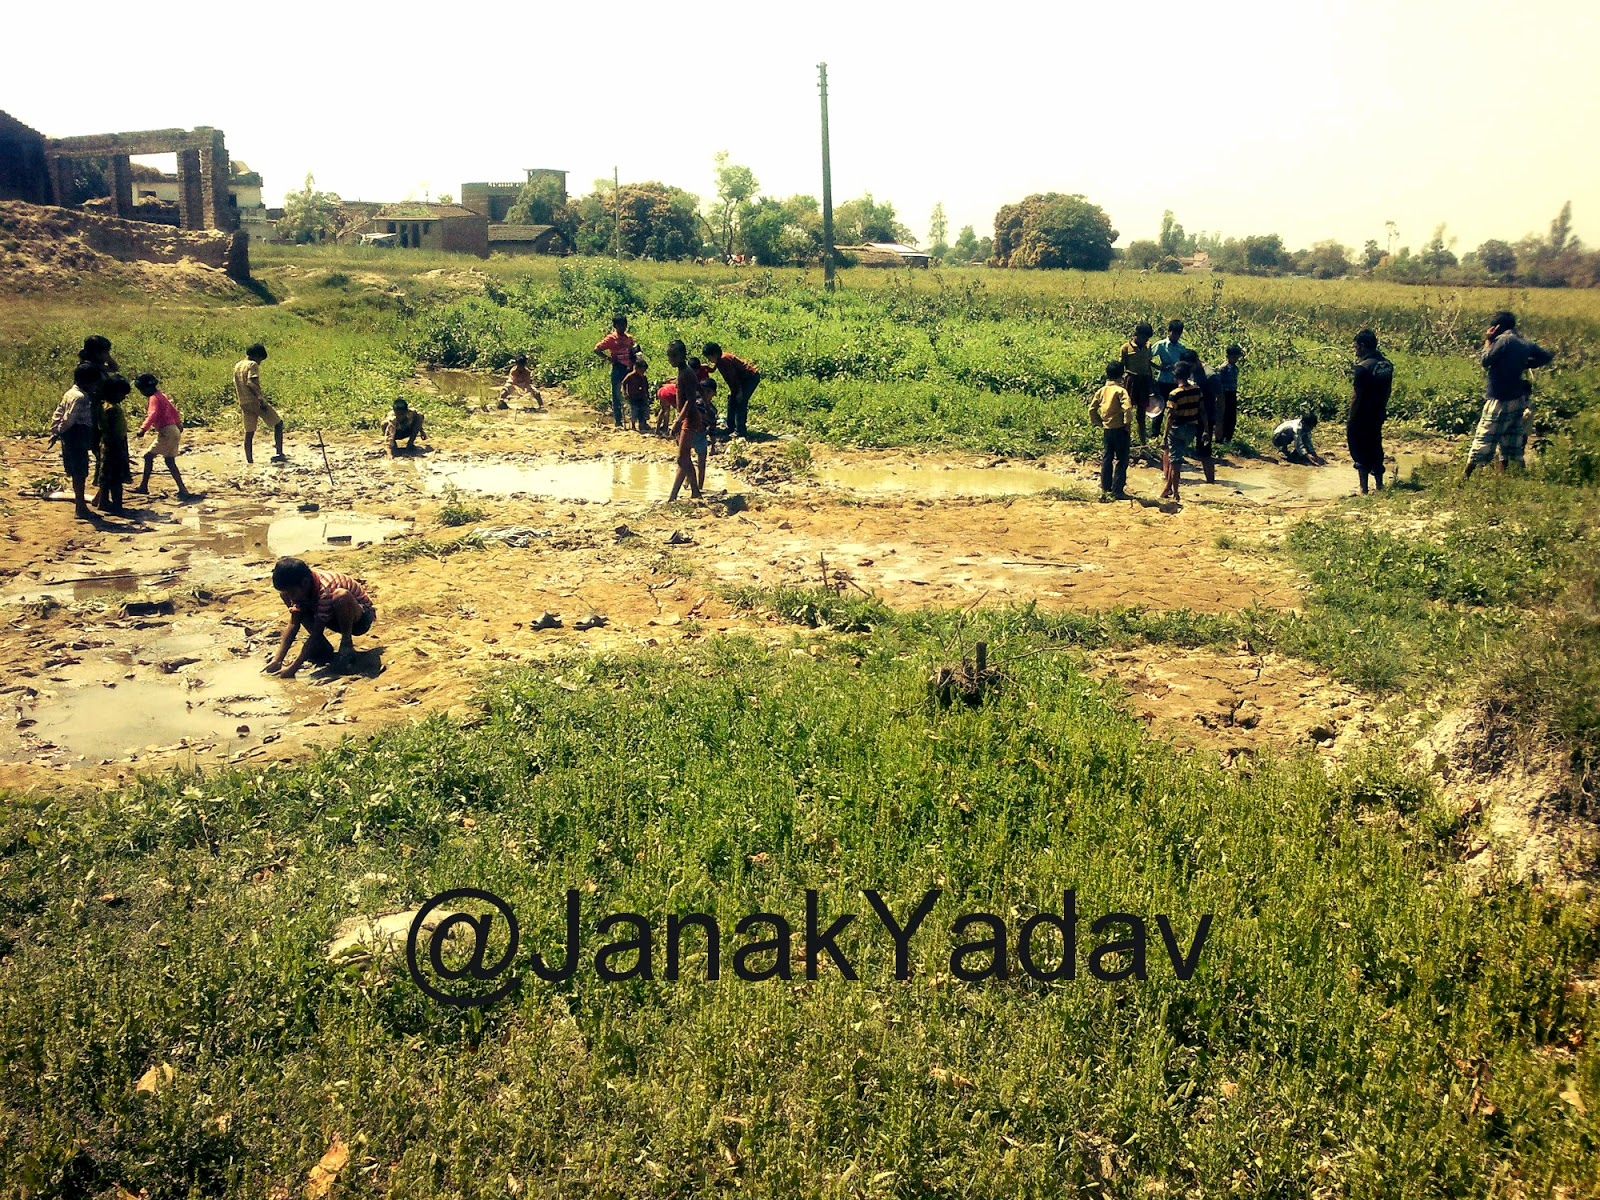 whole village kids are busy doing mud fishing with just hands, bare hands only, no hook required to fish